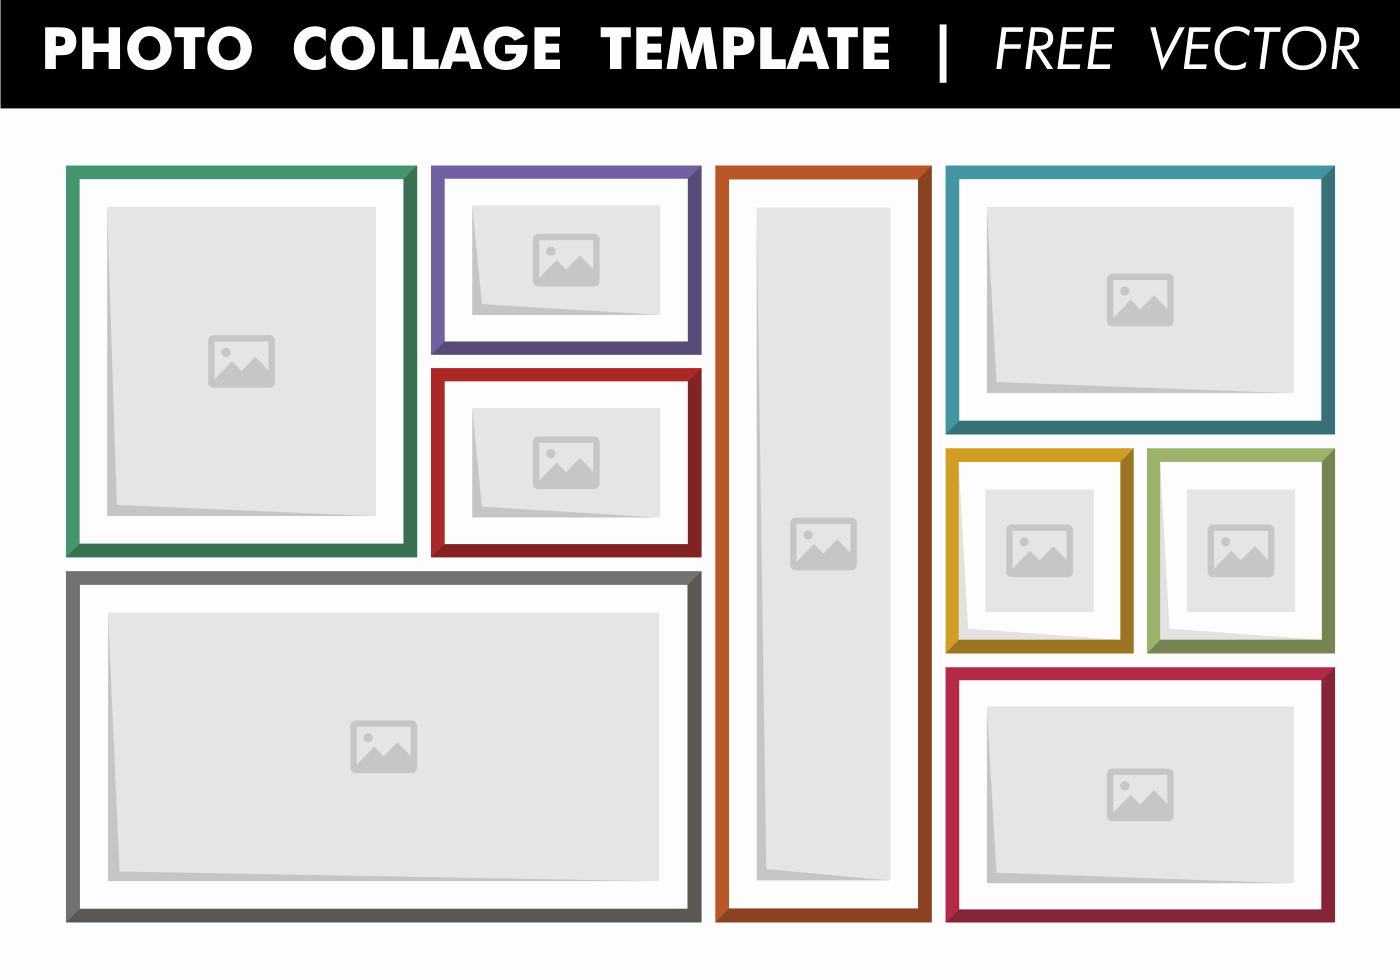 Photo Collage Template Word Inspirational Collage Template Free Vector Download Free Vector